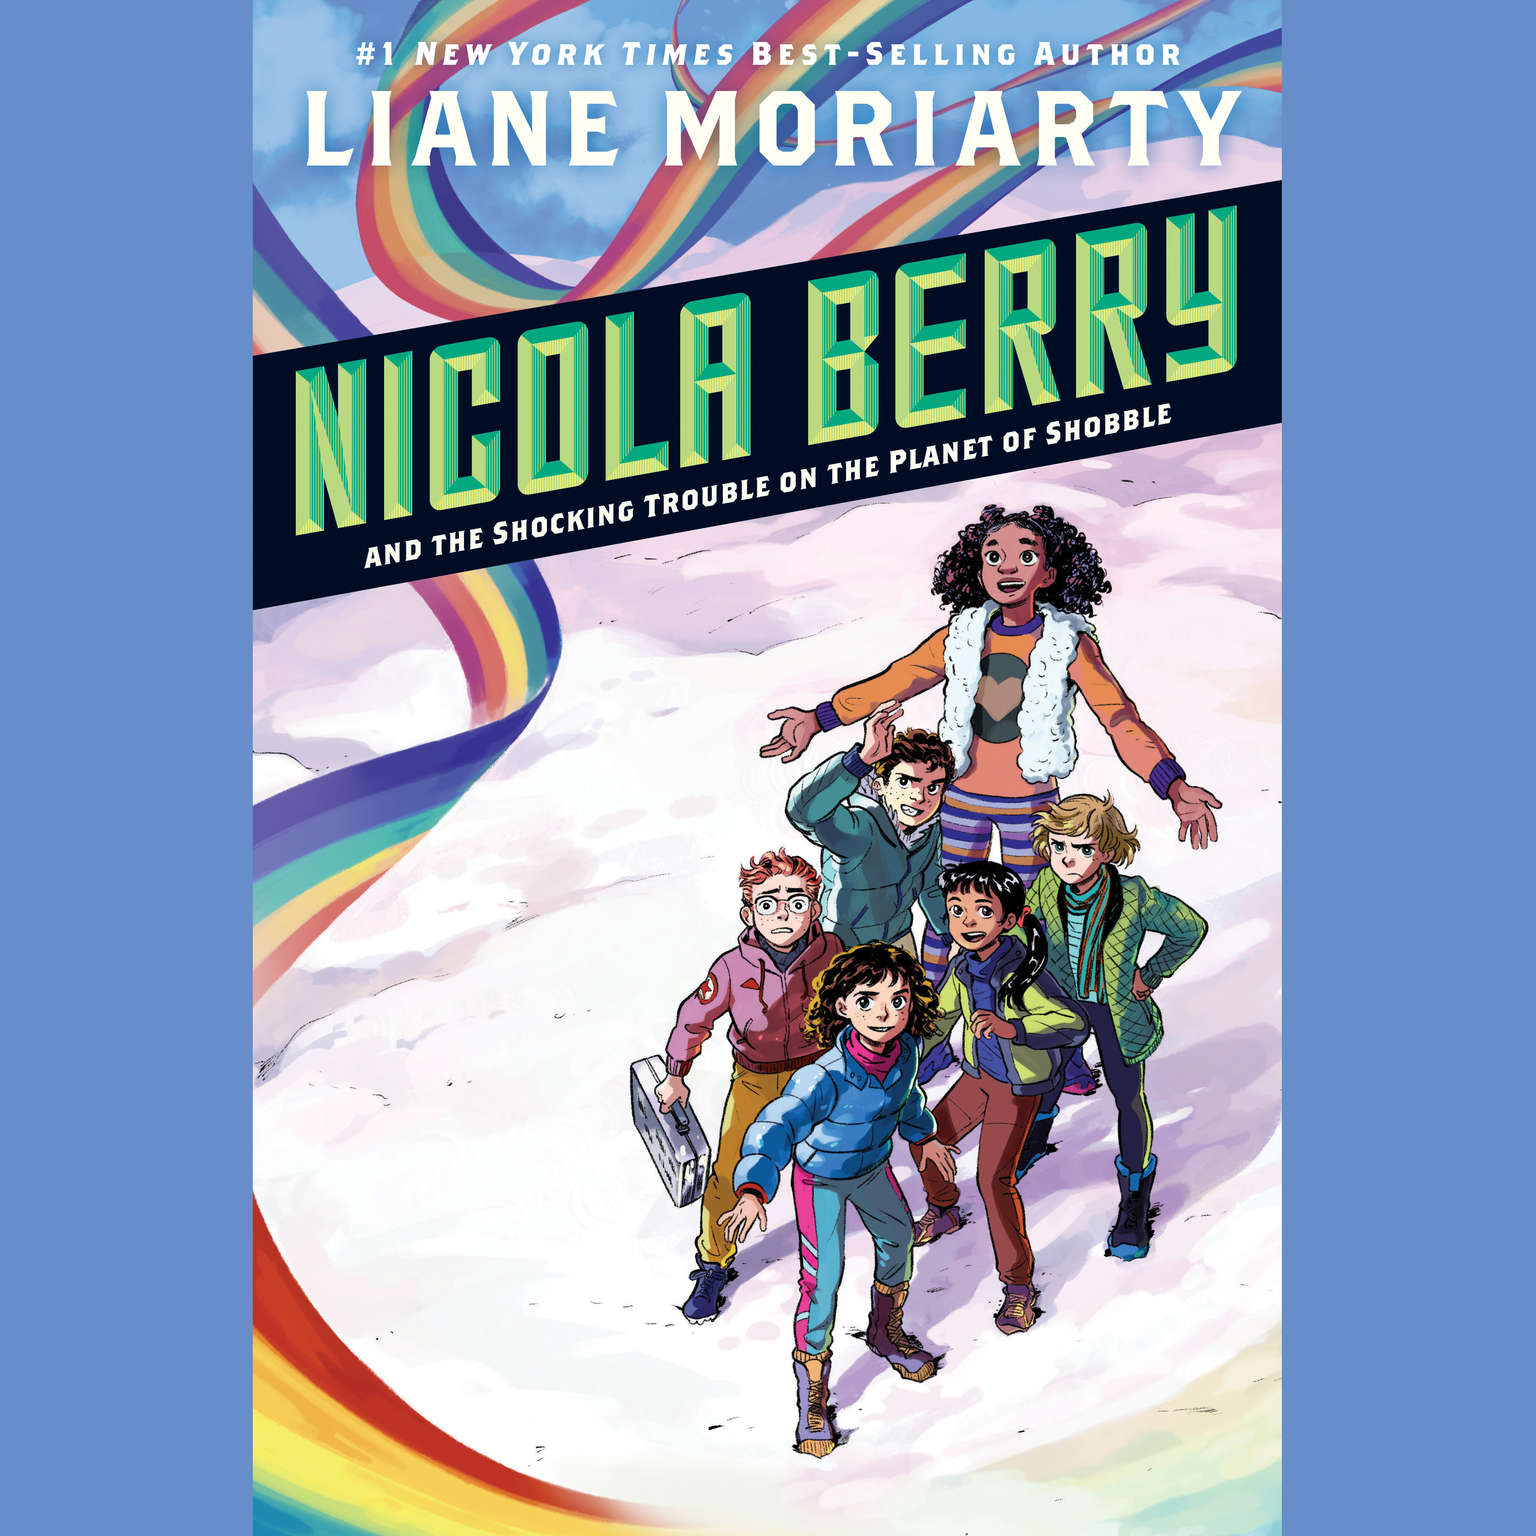 Nicola Berry and the Shocking Trouble on the Planet of Shobble #2 Audiobook, by Liane Moriarty